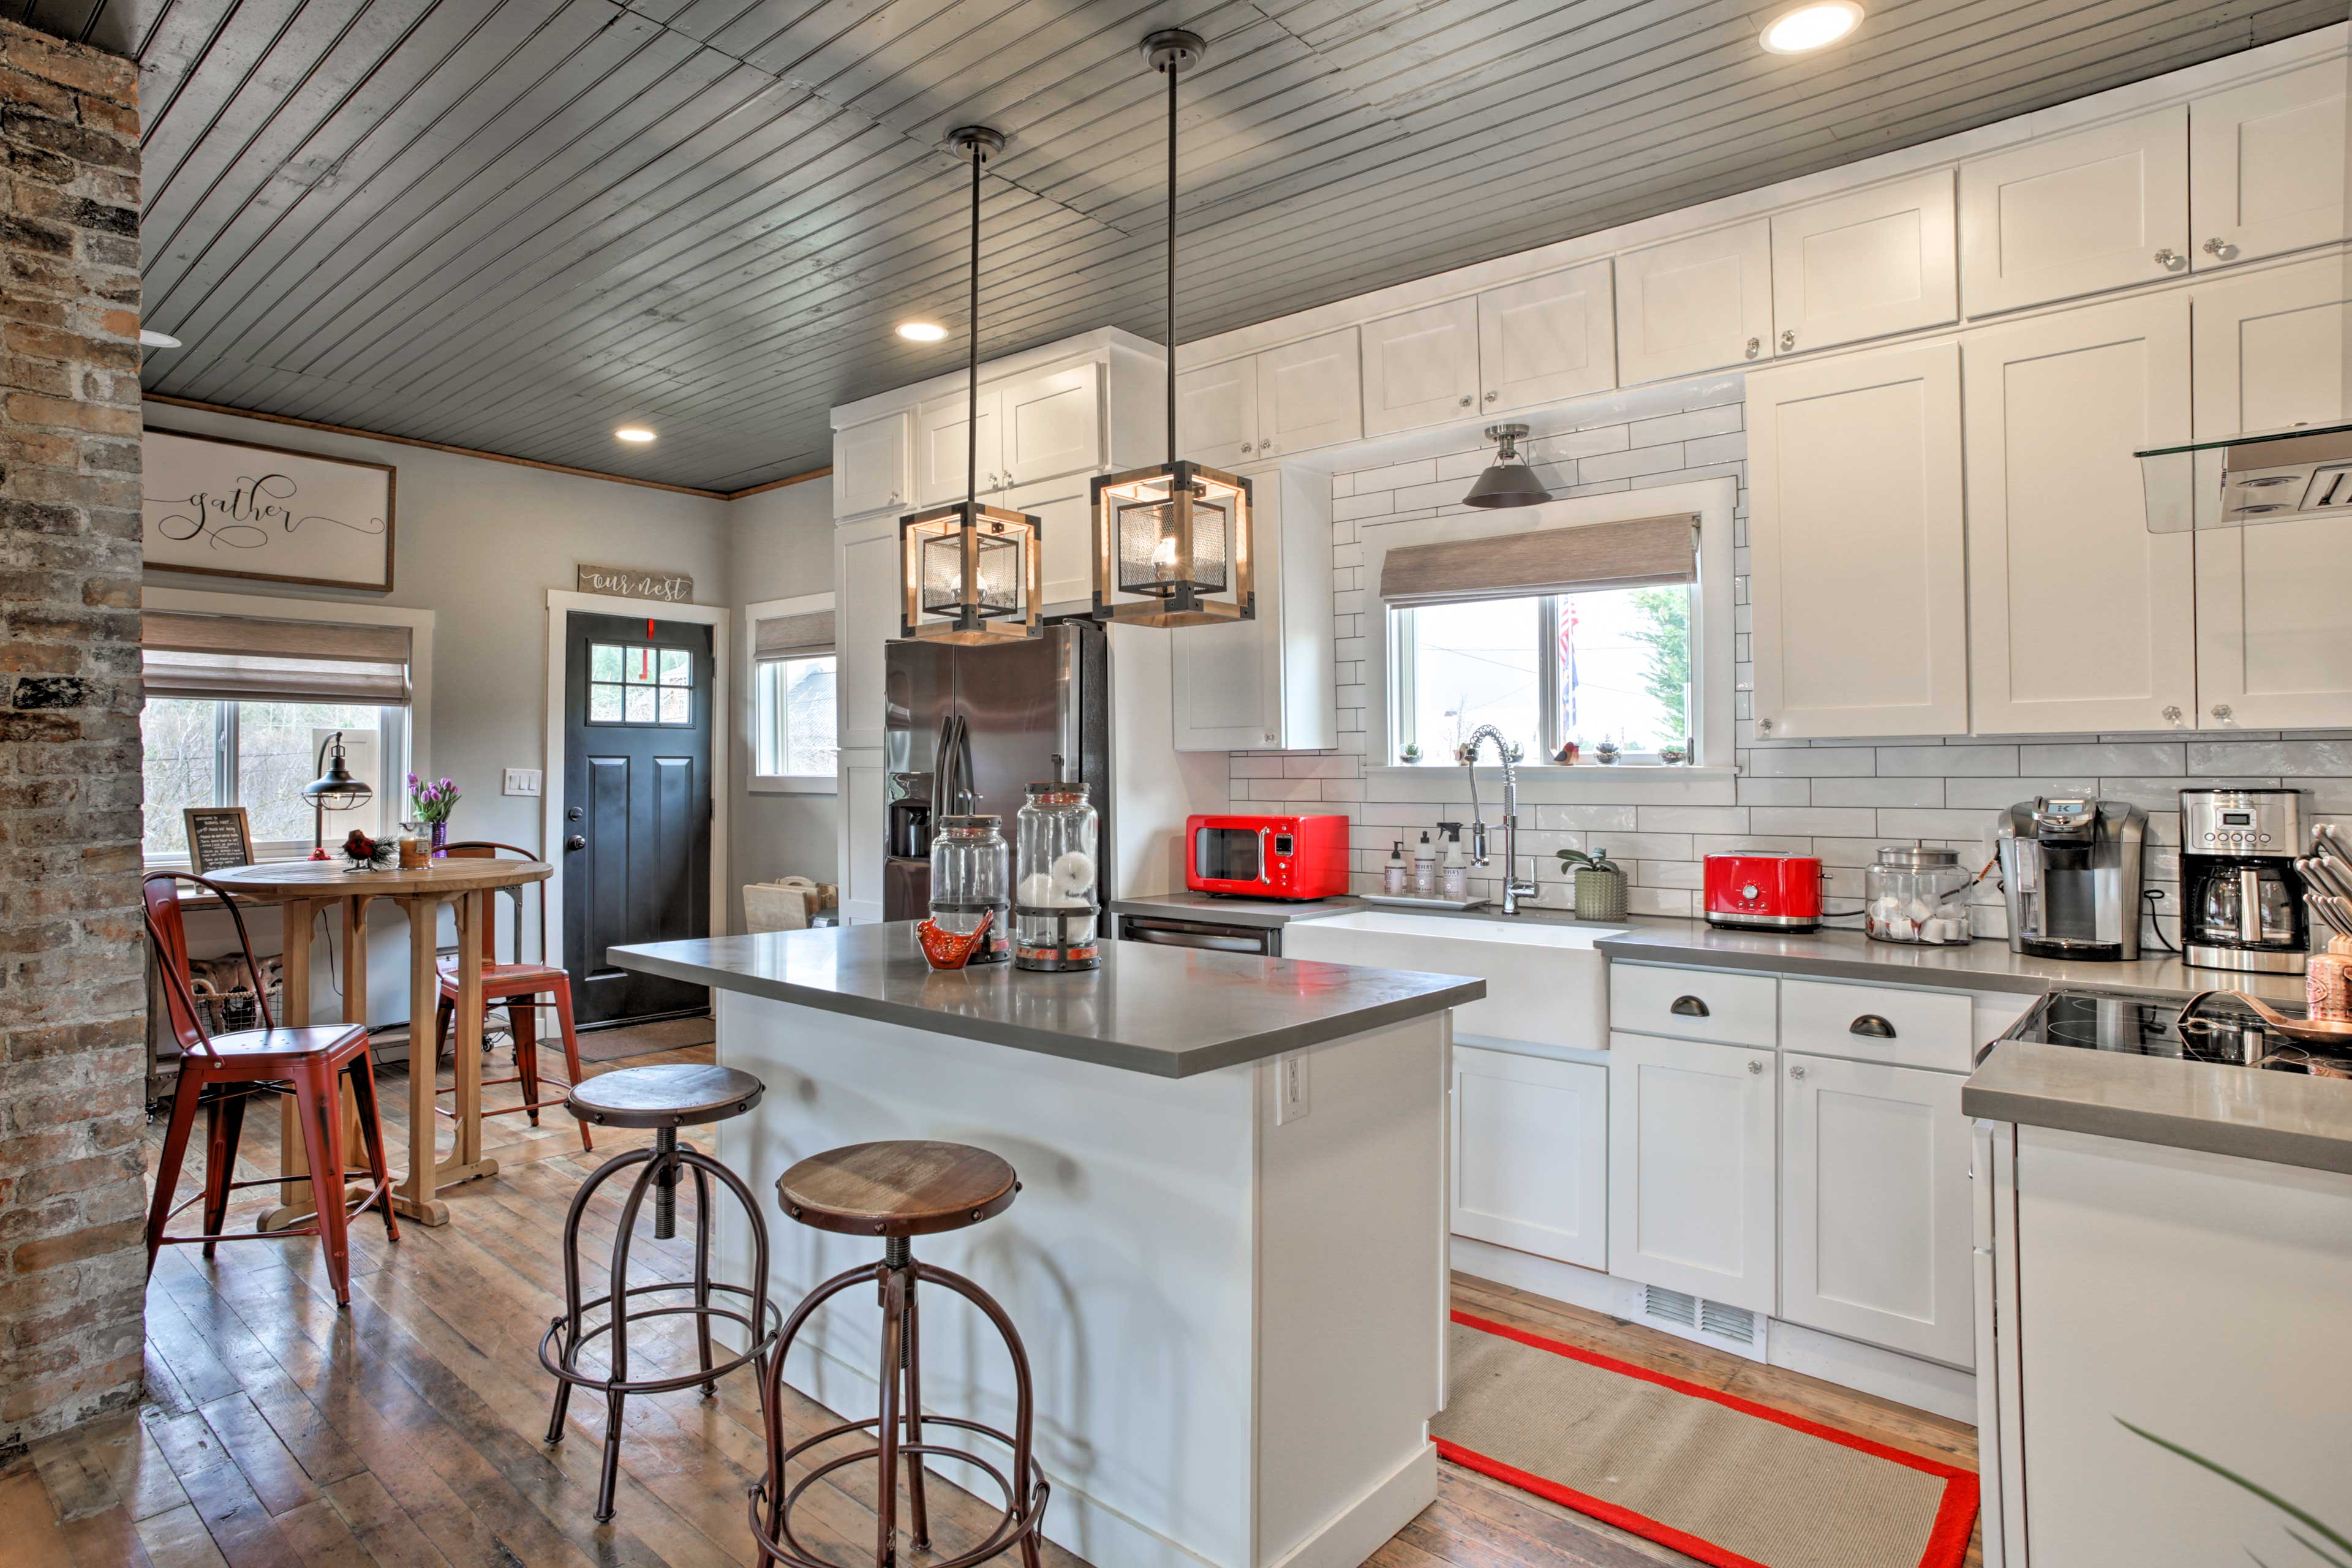 The sleek fully equipped kitchen boasts subway tile and a kitchen island.